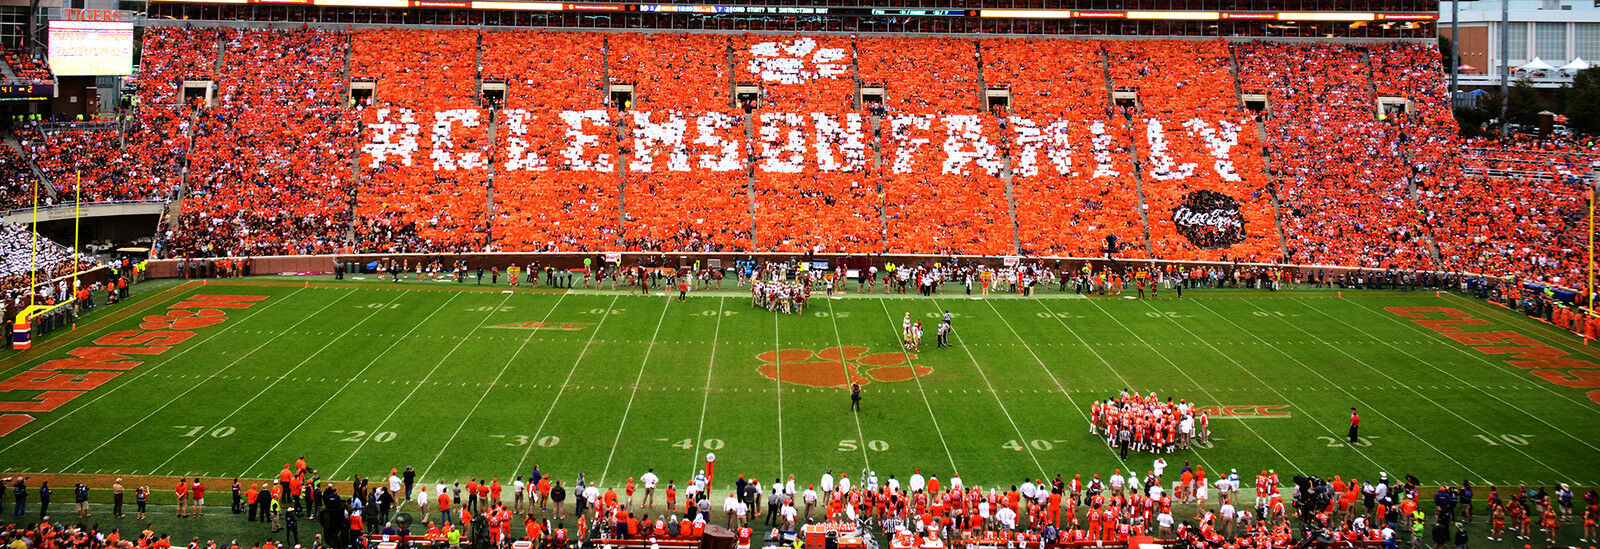 Boston College Eagles at Clemson Tigers Football